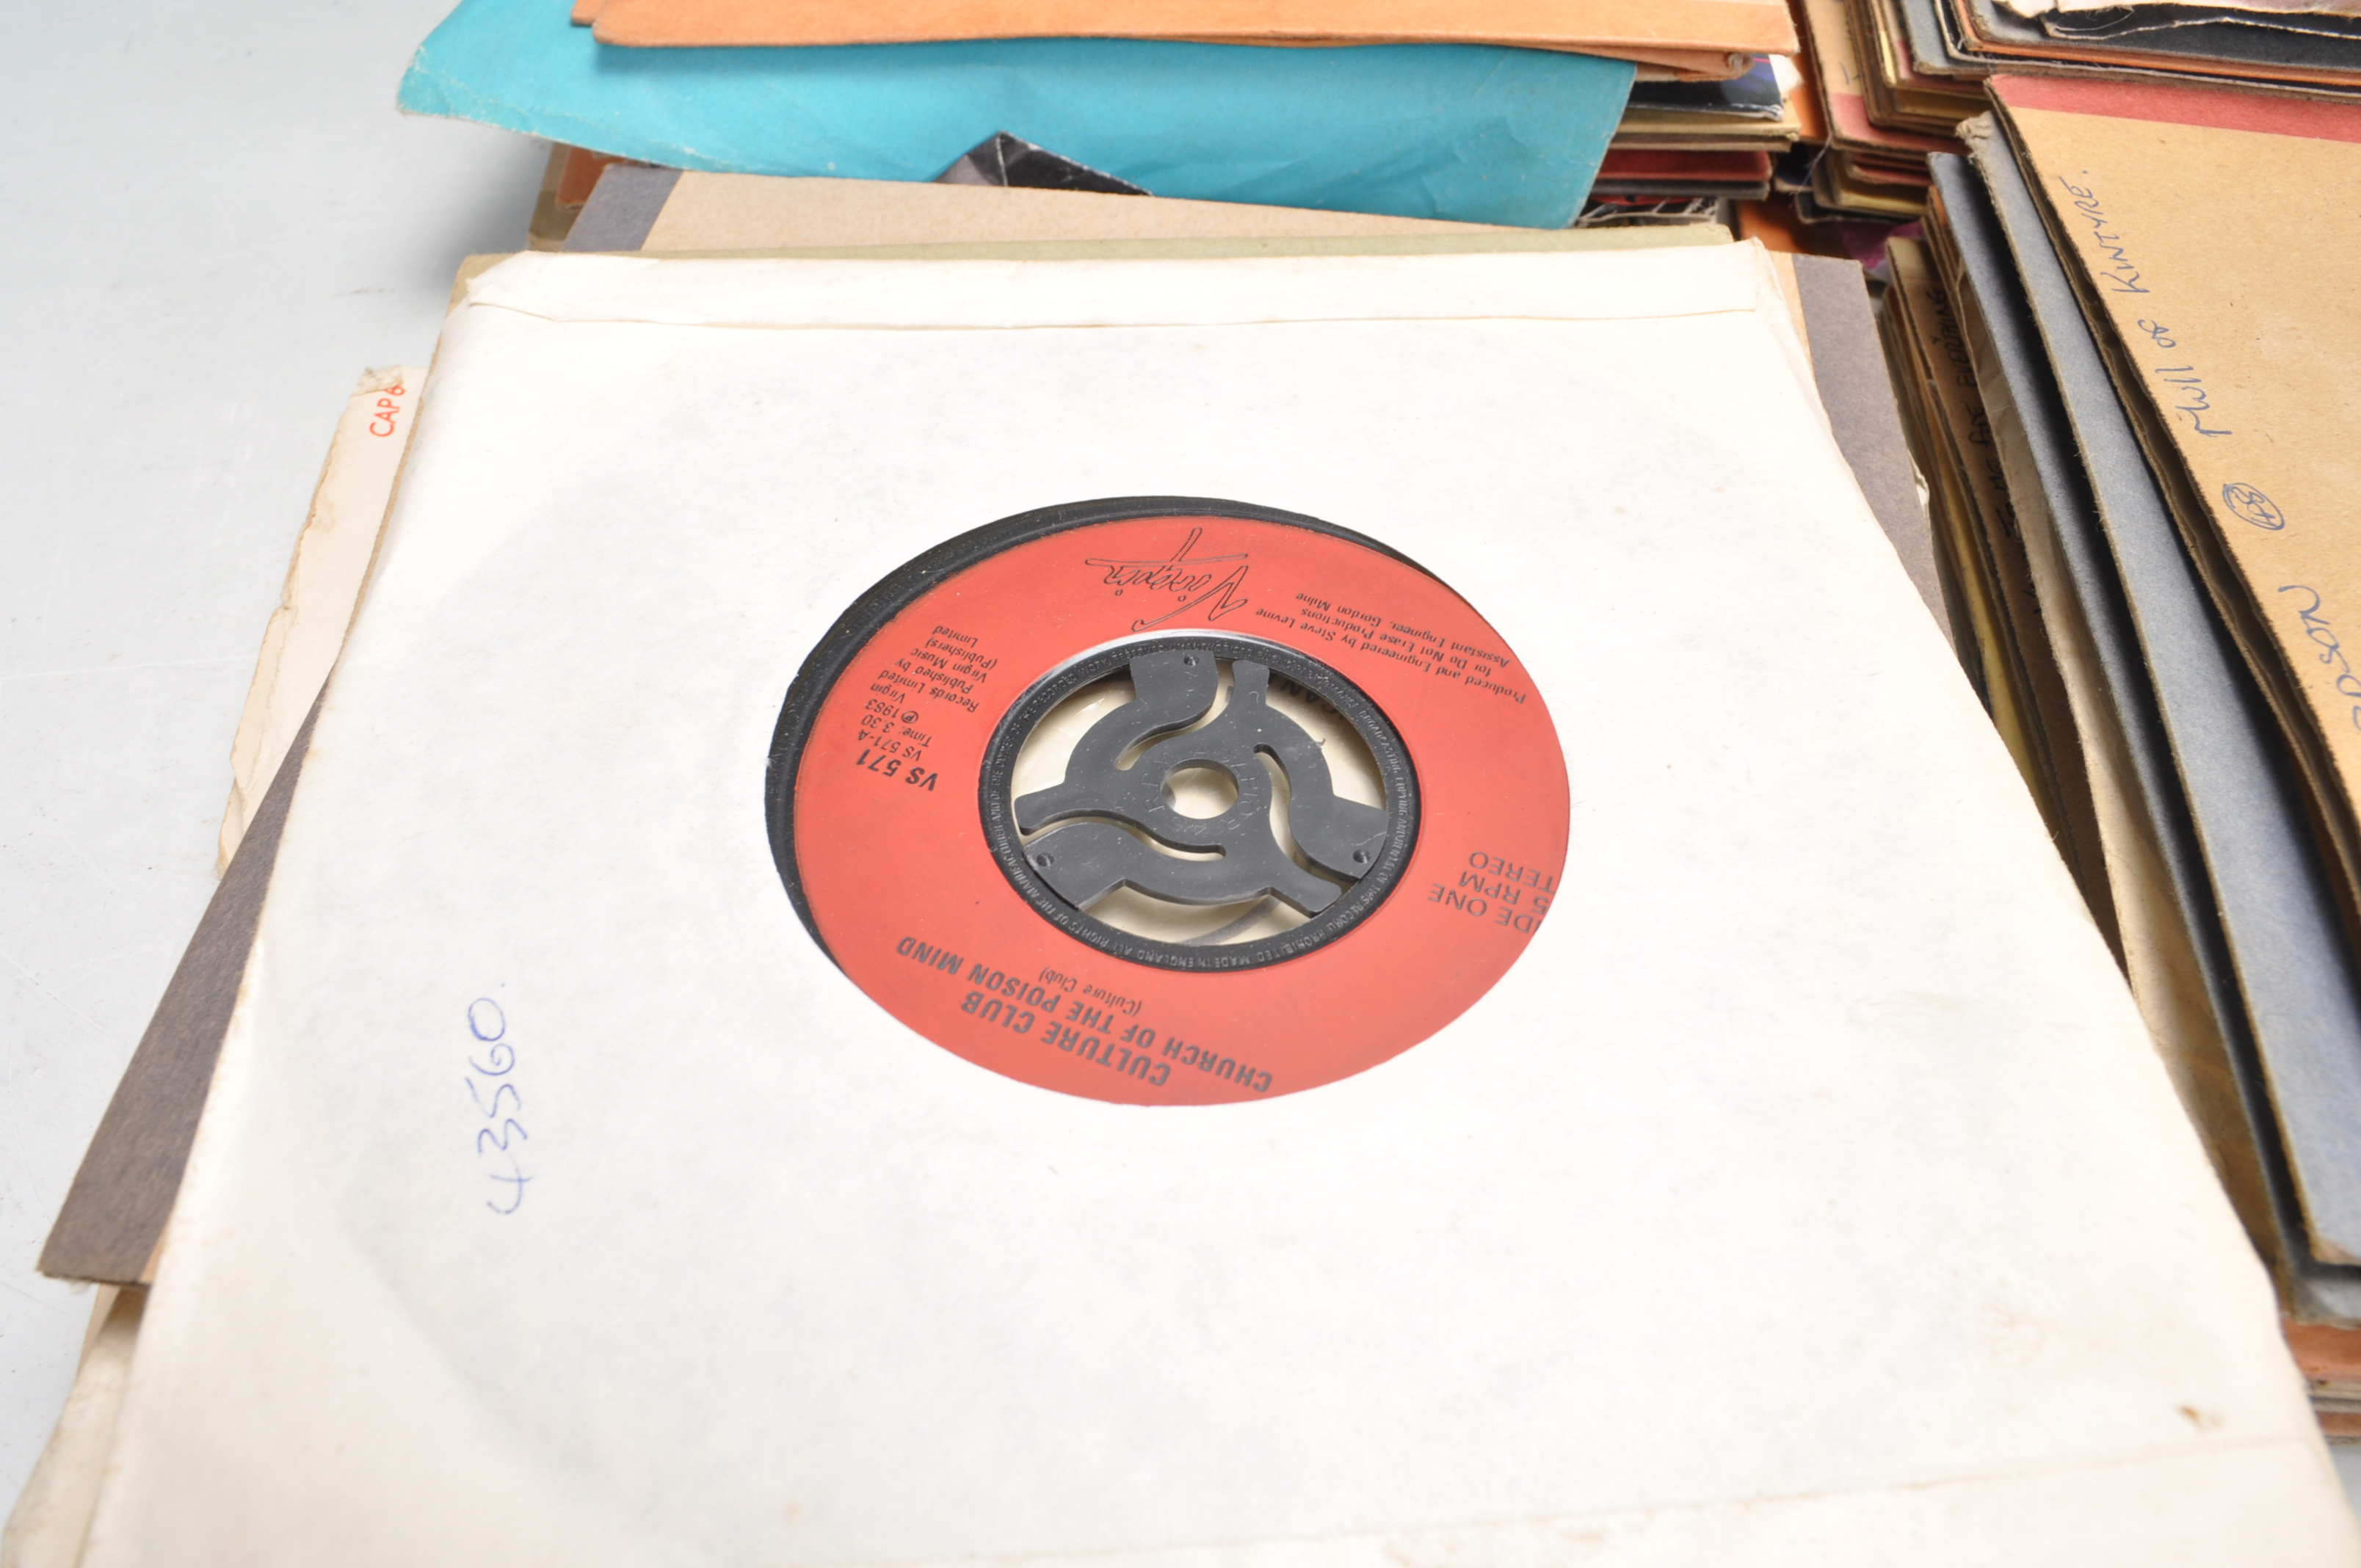 """LARGE COLLECTION OF VINTAGE VINYL 45RPM 7"""" SINGLES - Image 3 of 9"""